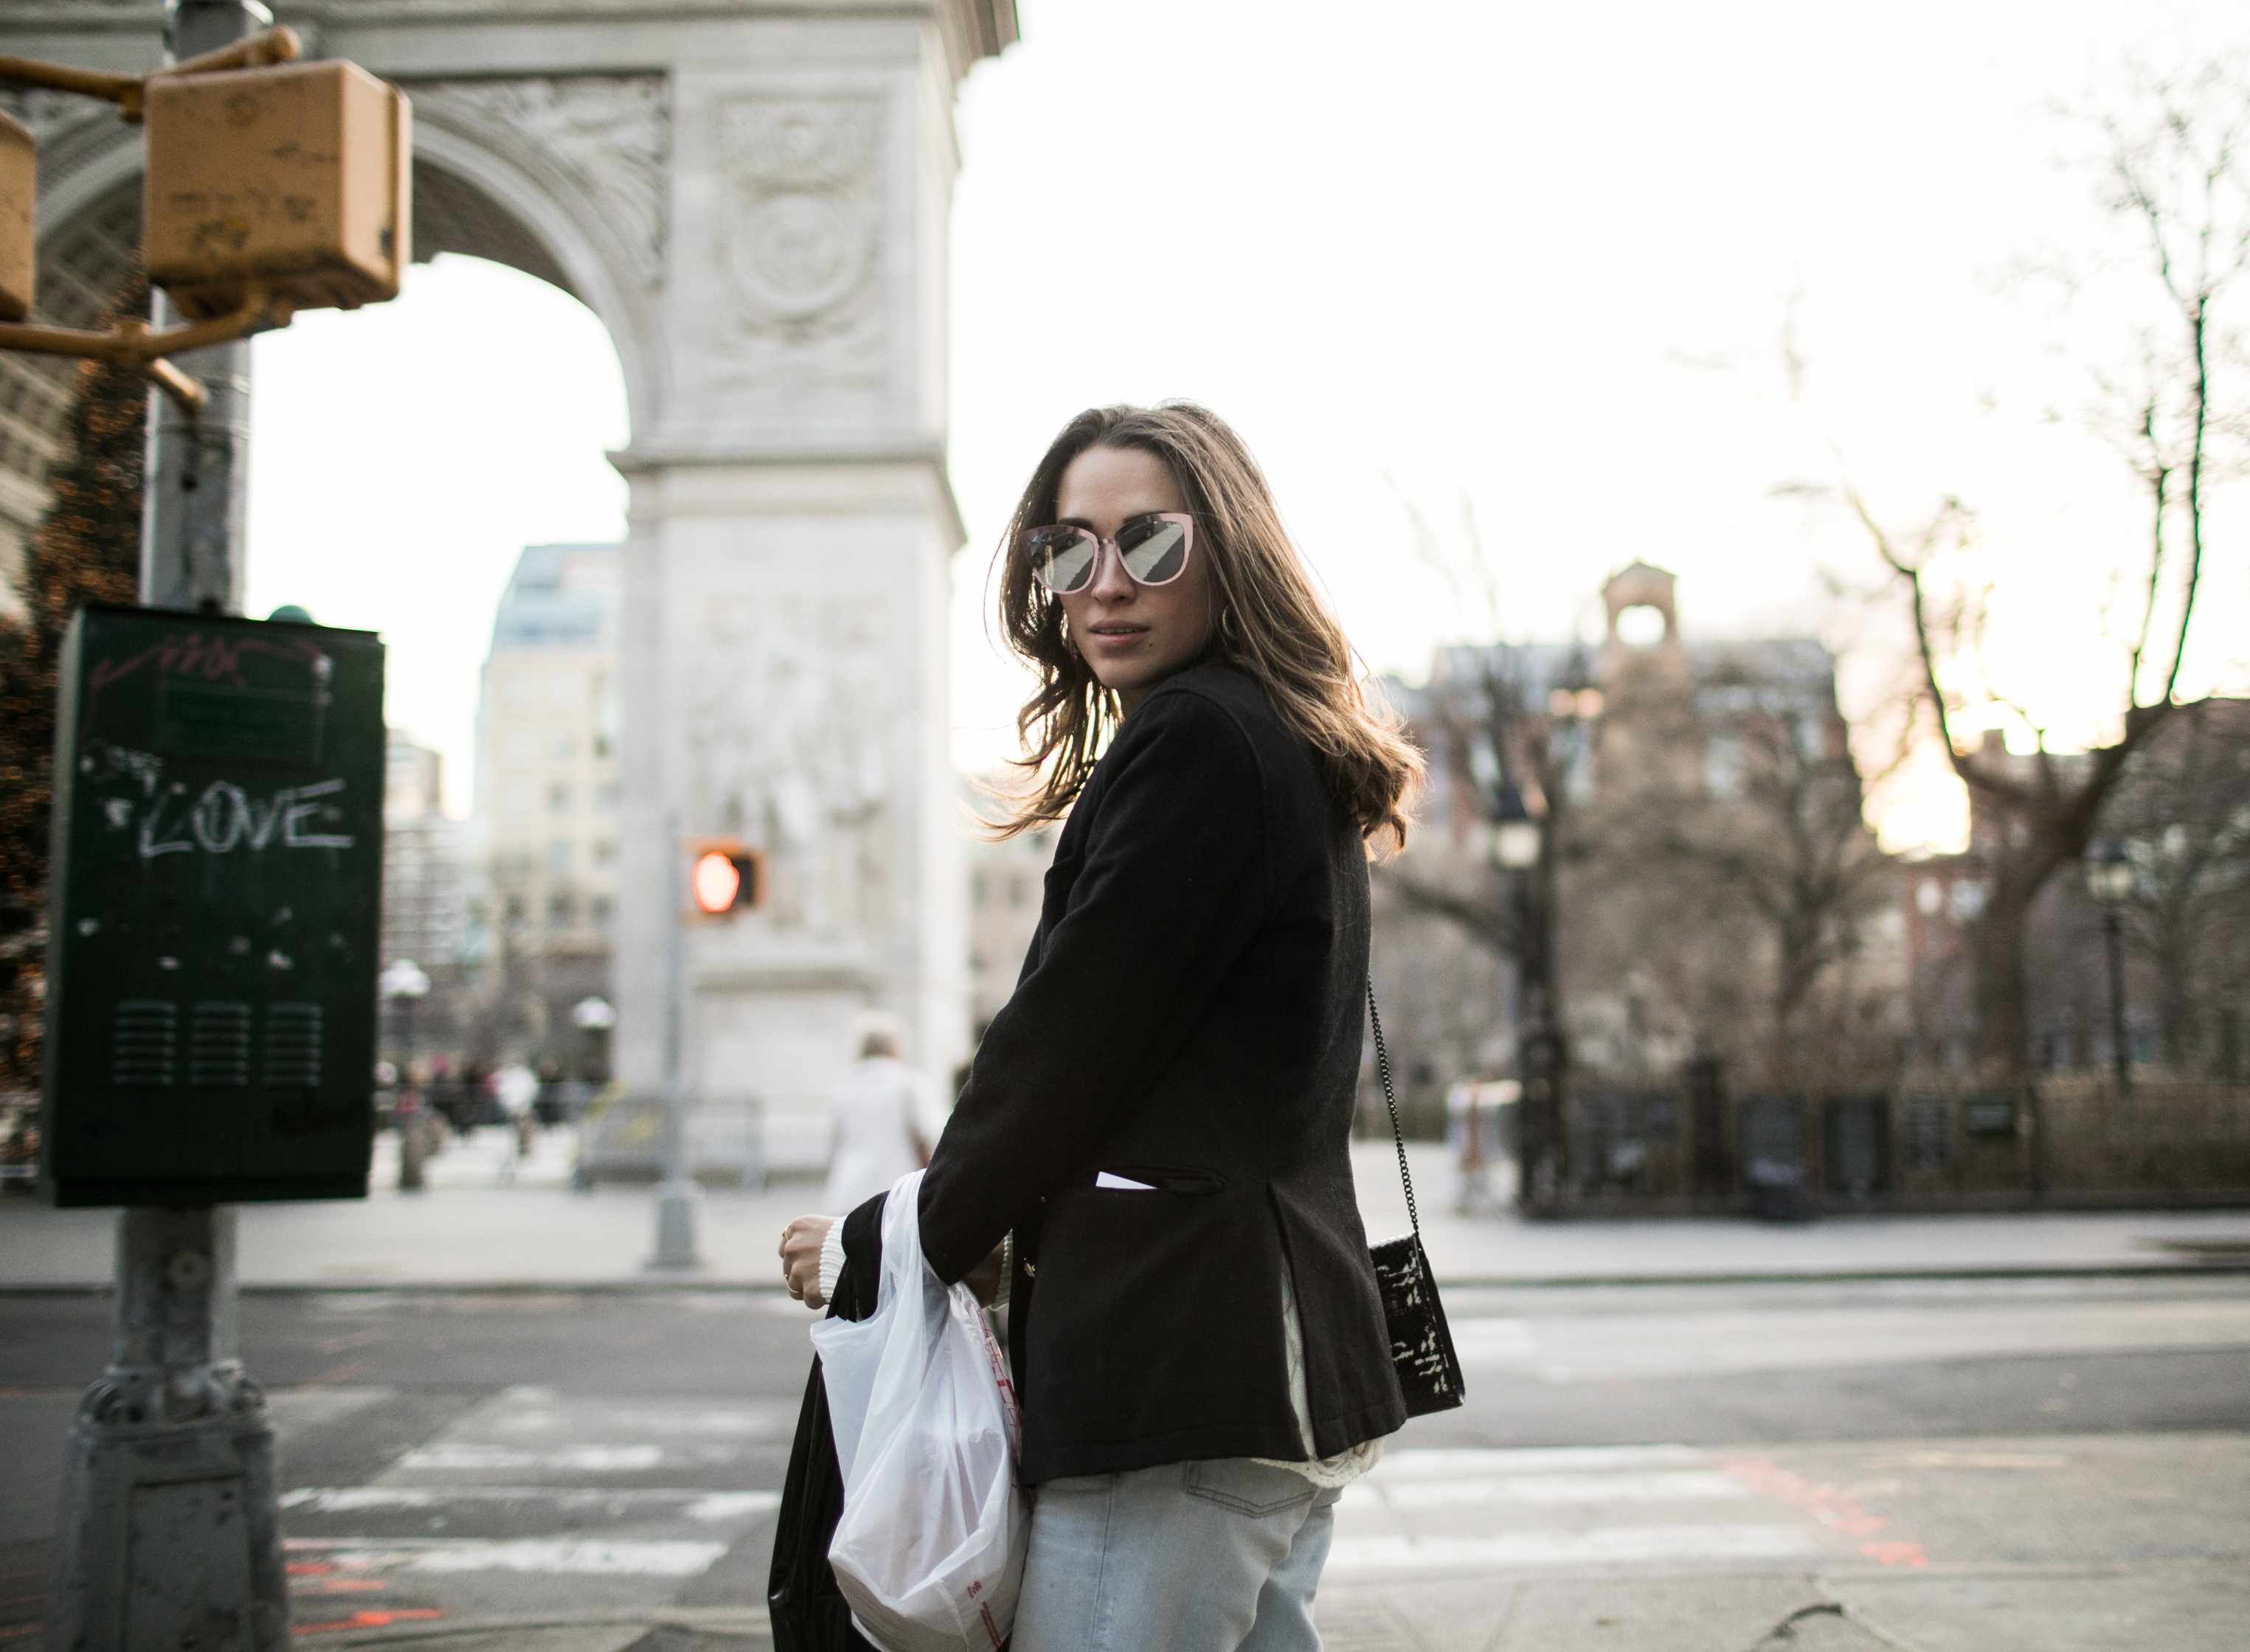 Xenia.Mz Russian Blogger Streetstyle Adventures in New York City During Christmas. Photo by Samuel.Black